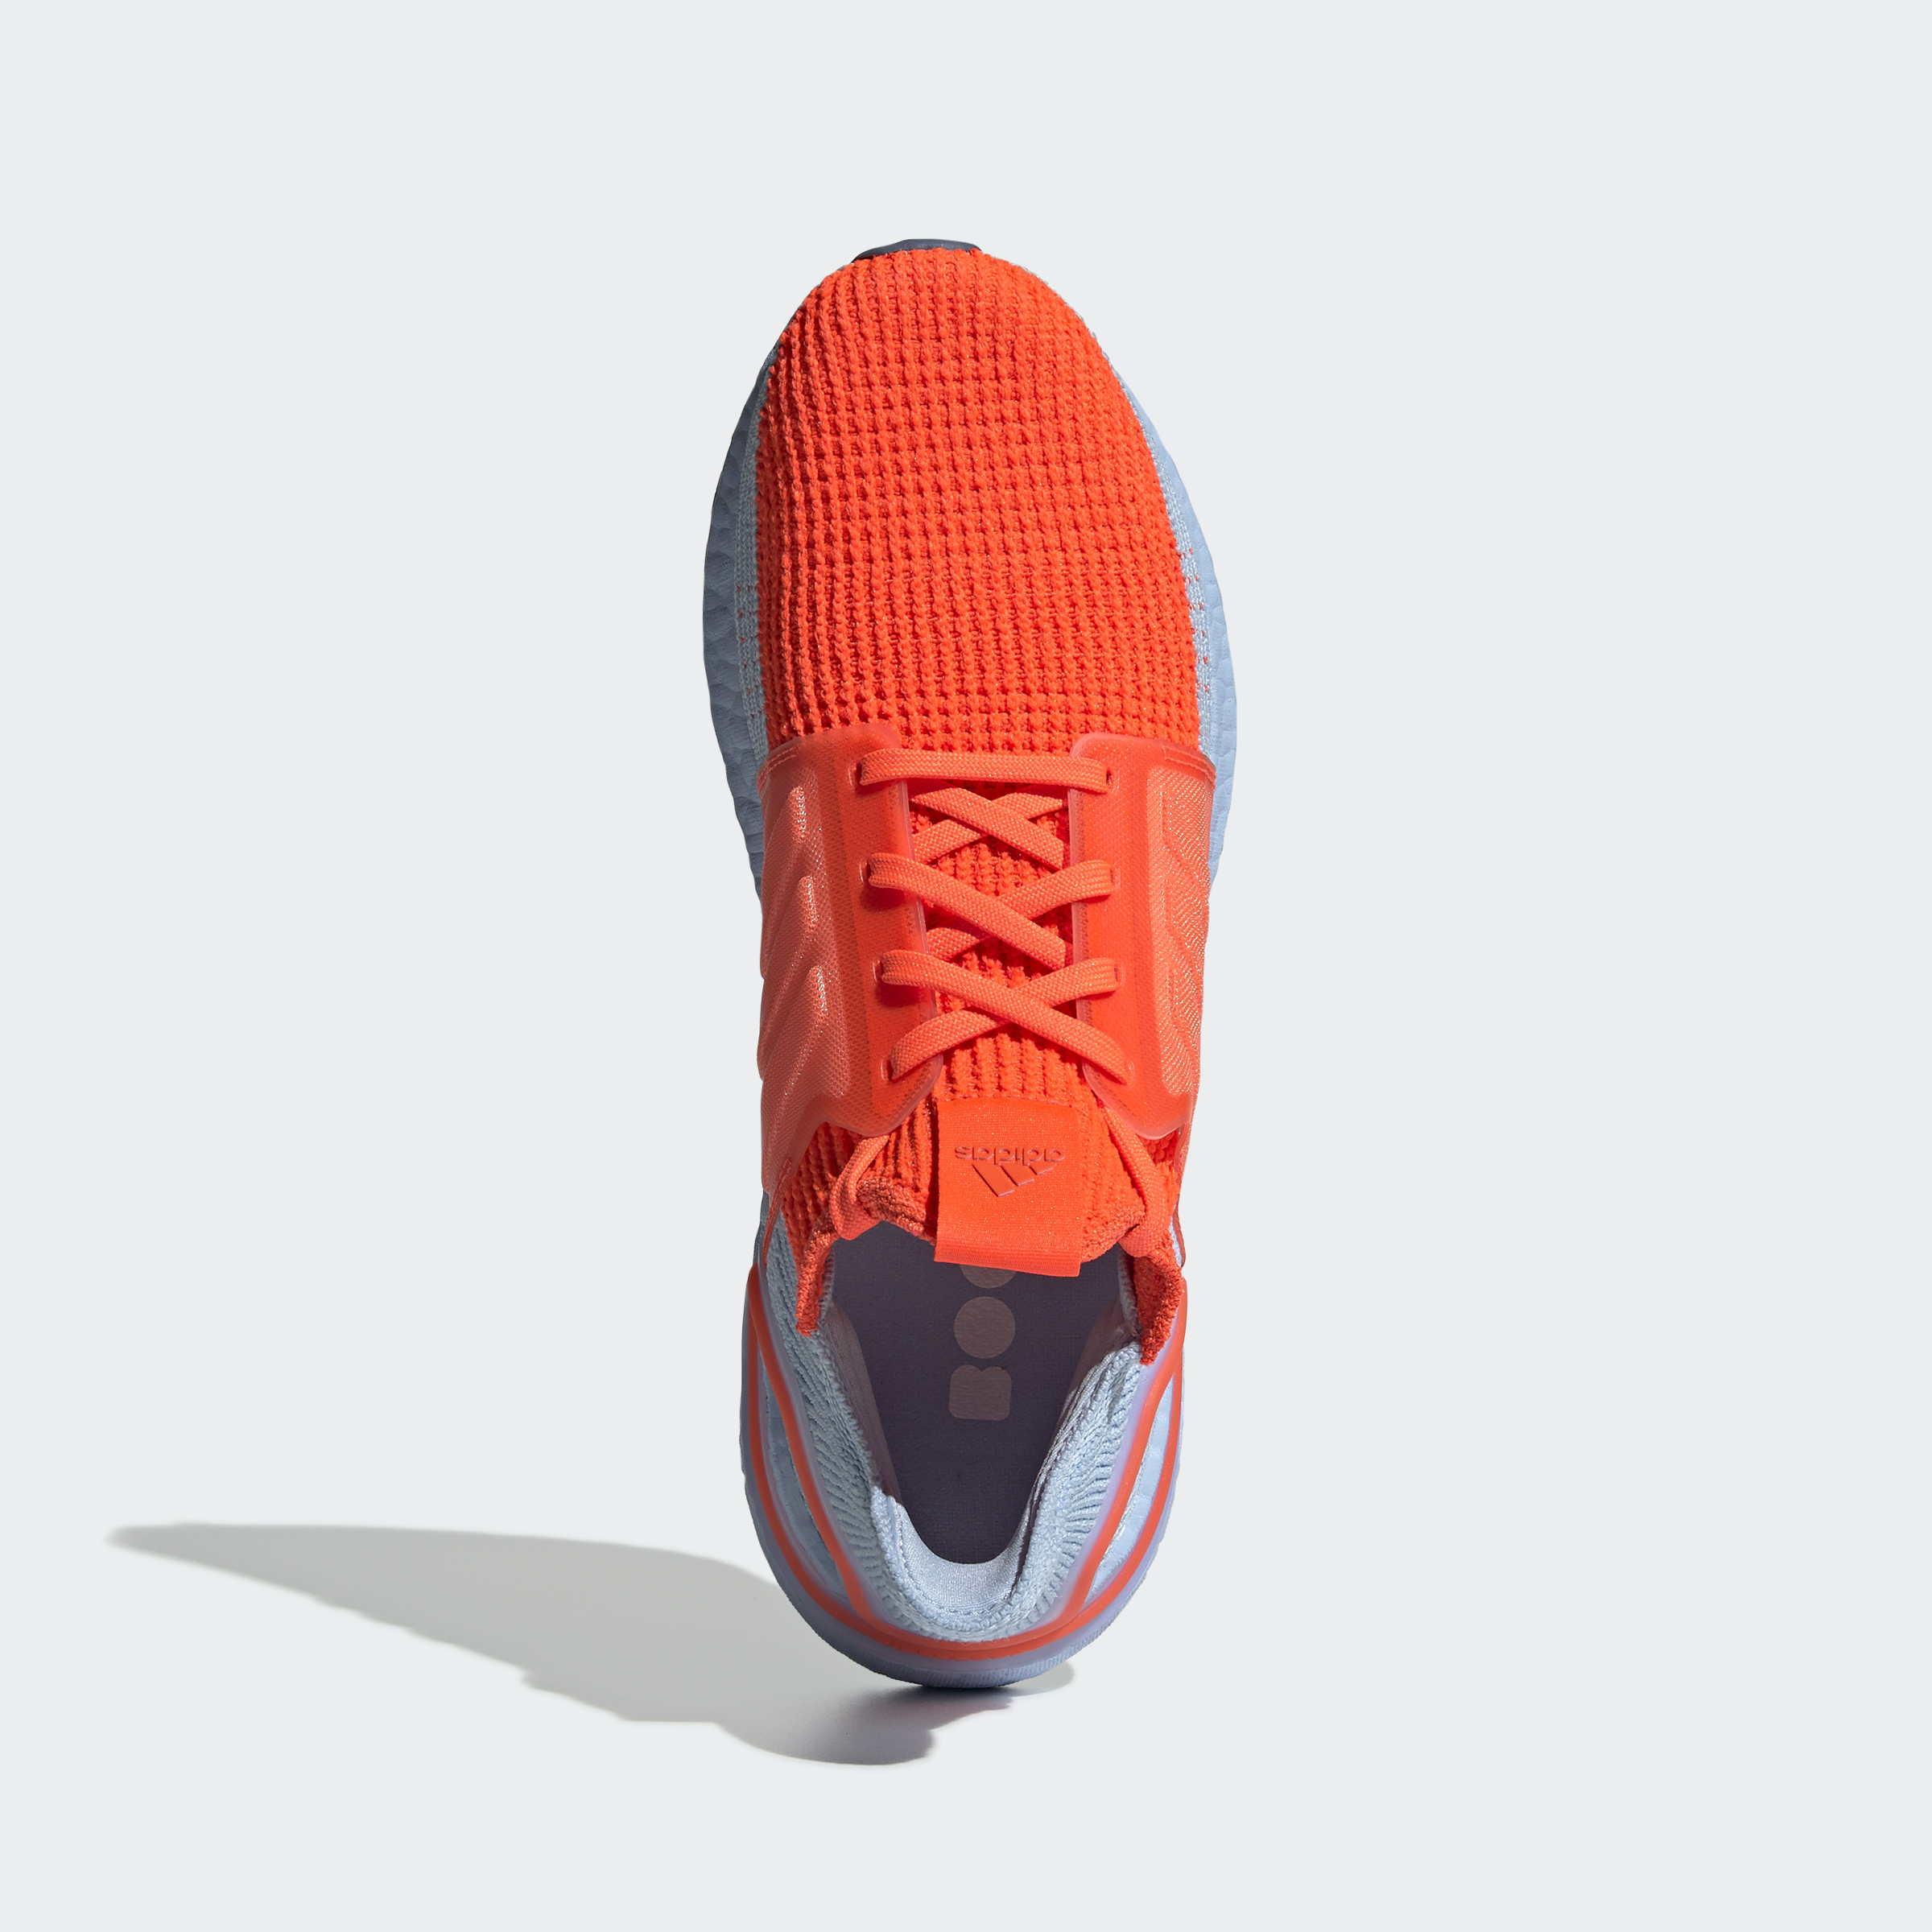 adidas-Ultraboost-19-Shoes-Athletic-amp-Sneakers thumbnail 81